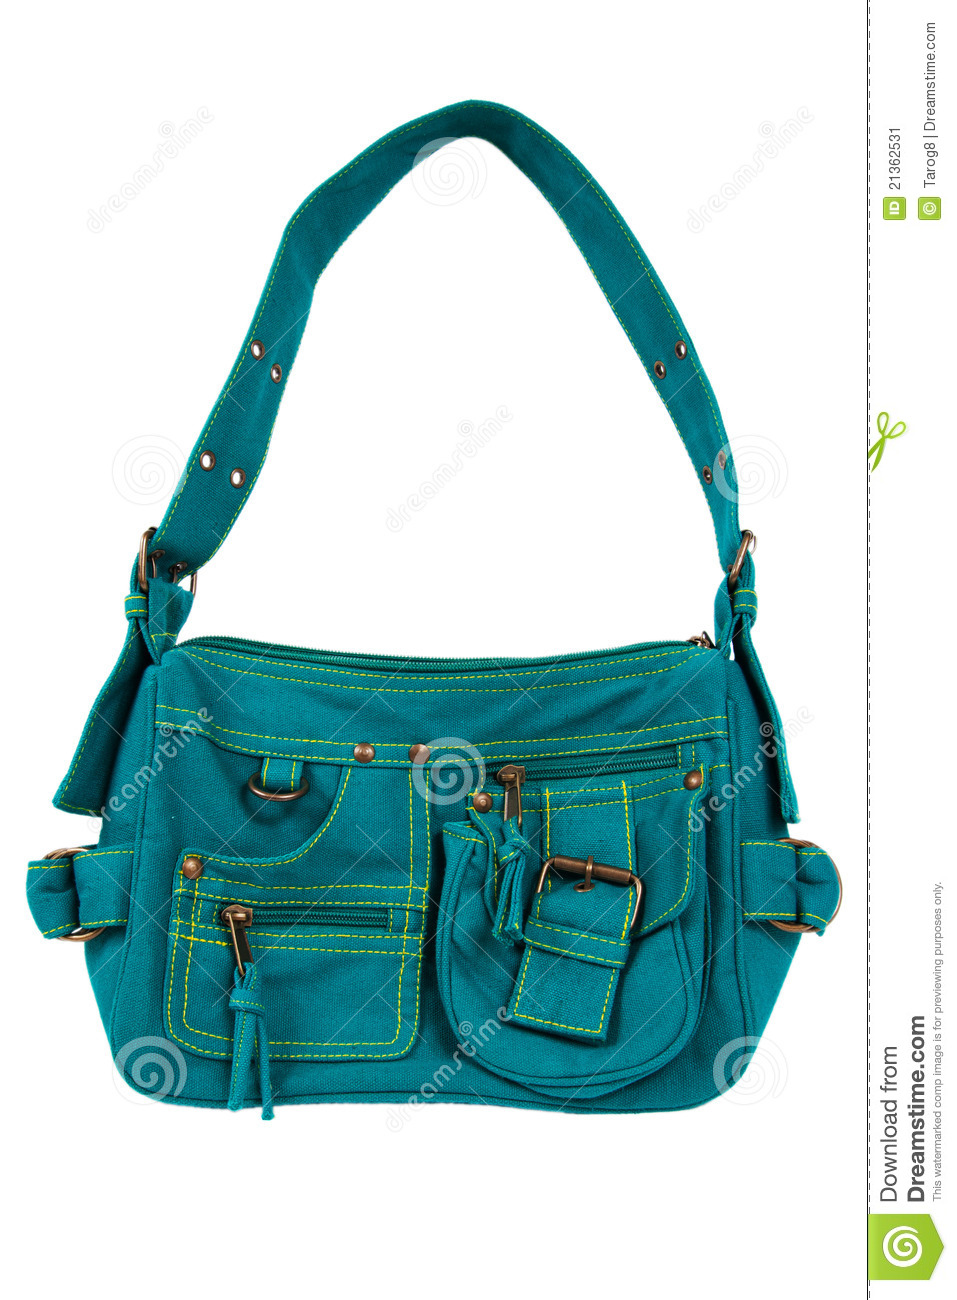 Blue-green fabric women bag isolated on white background.